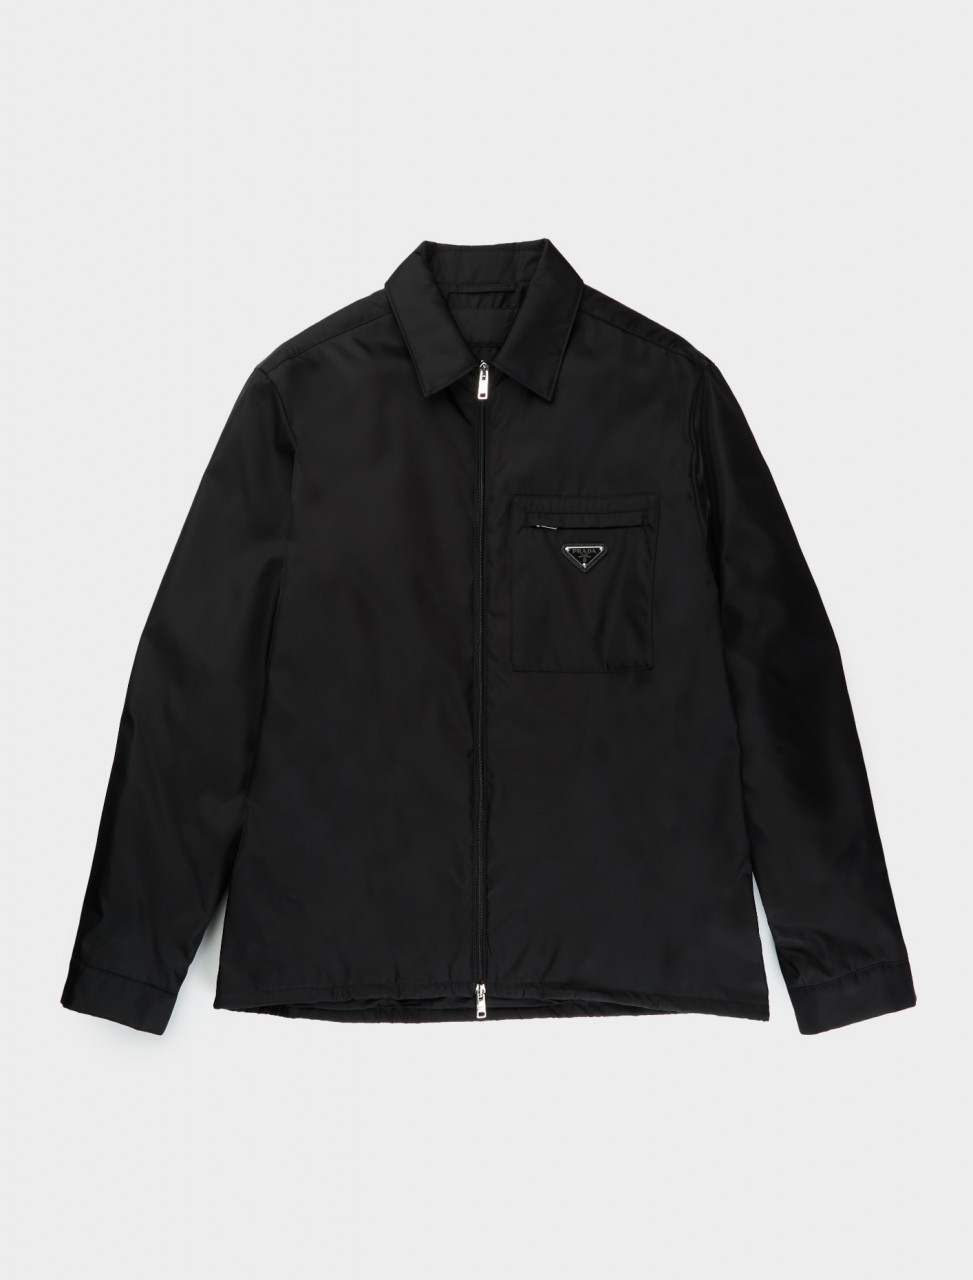 SC510M-1WQ8-F0002 PRADA RENYLON ZIP UP JACKET IN BLACK